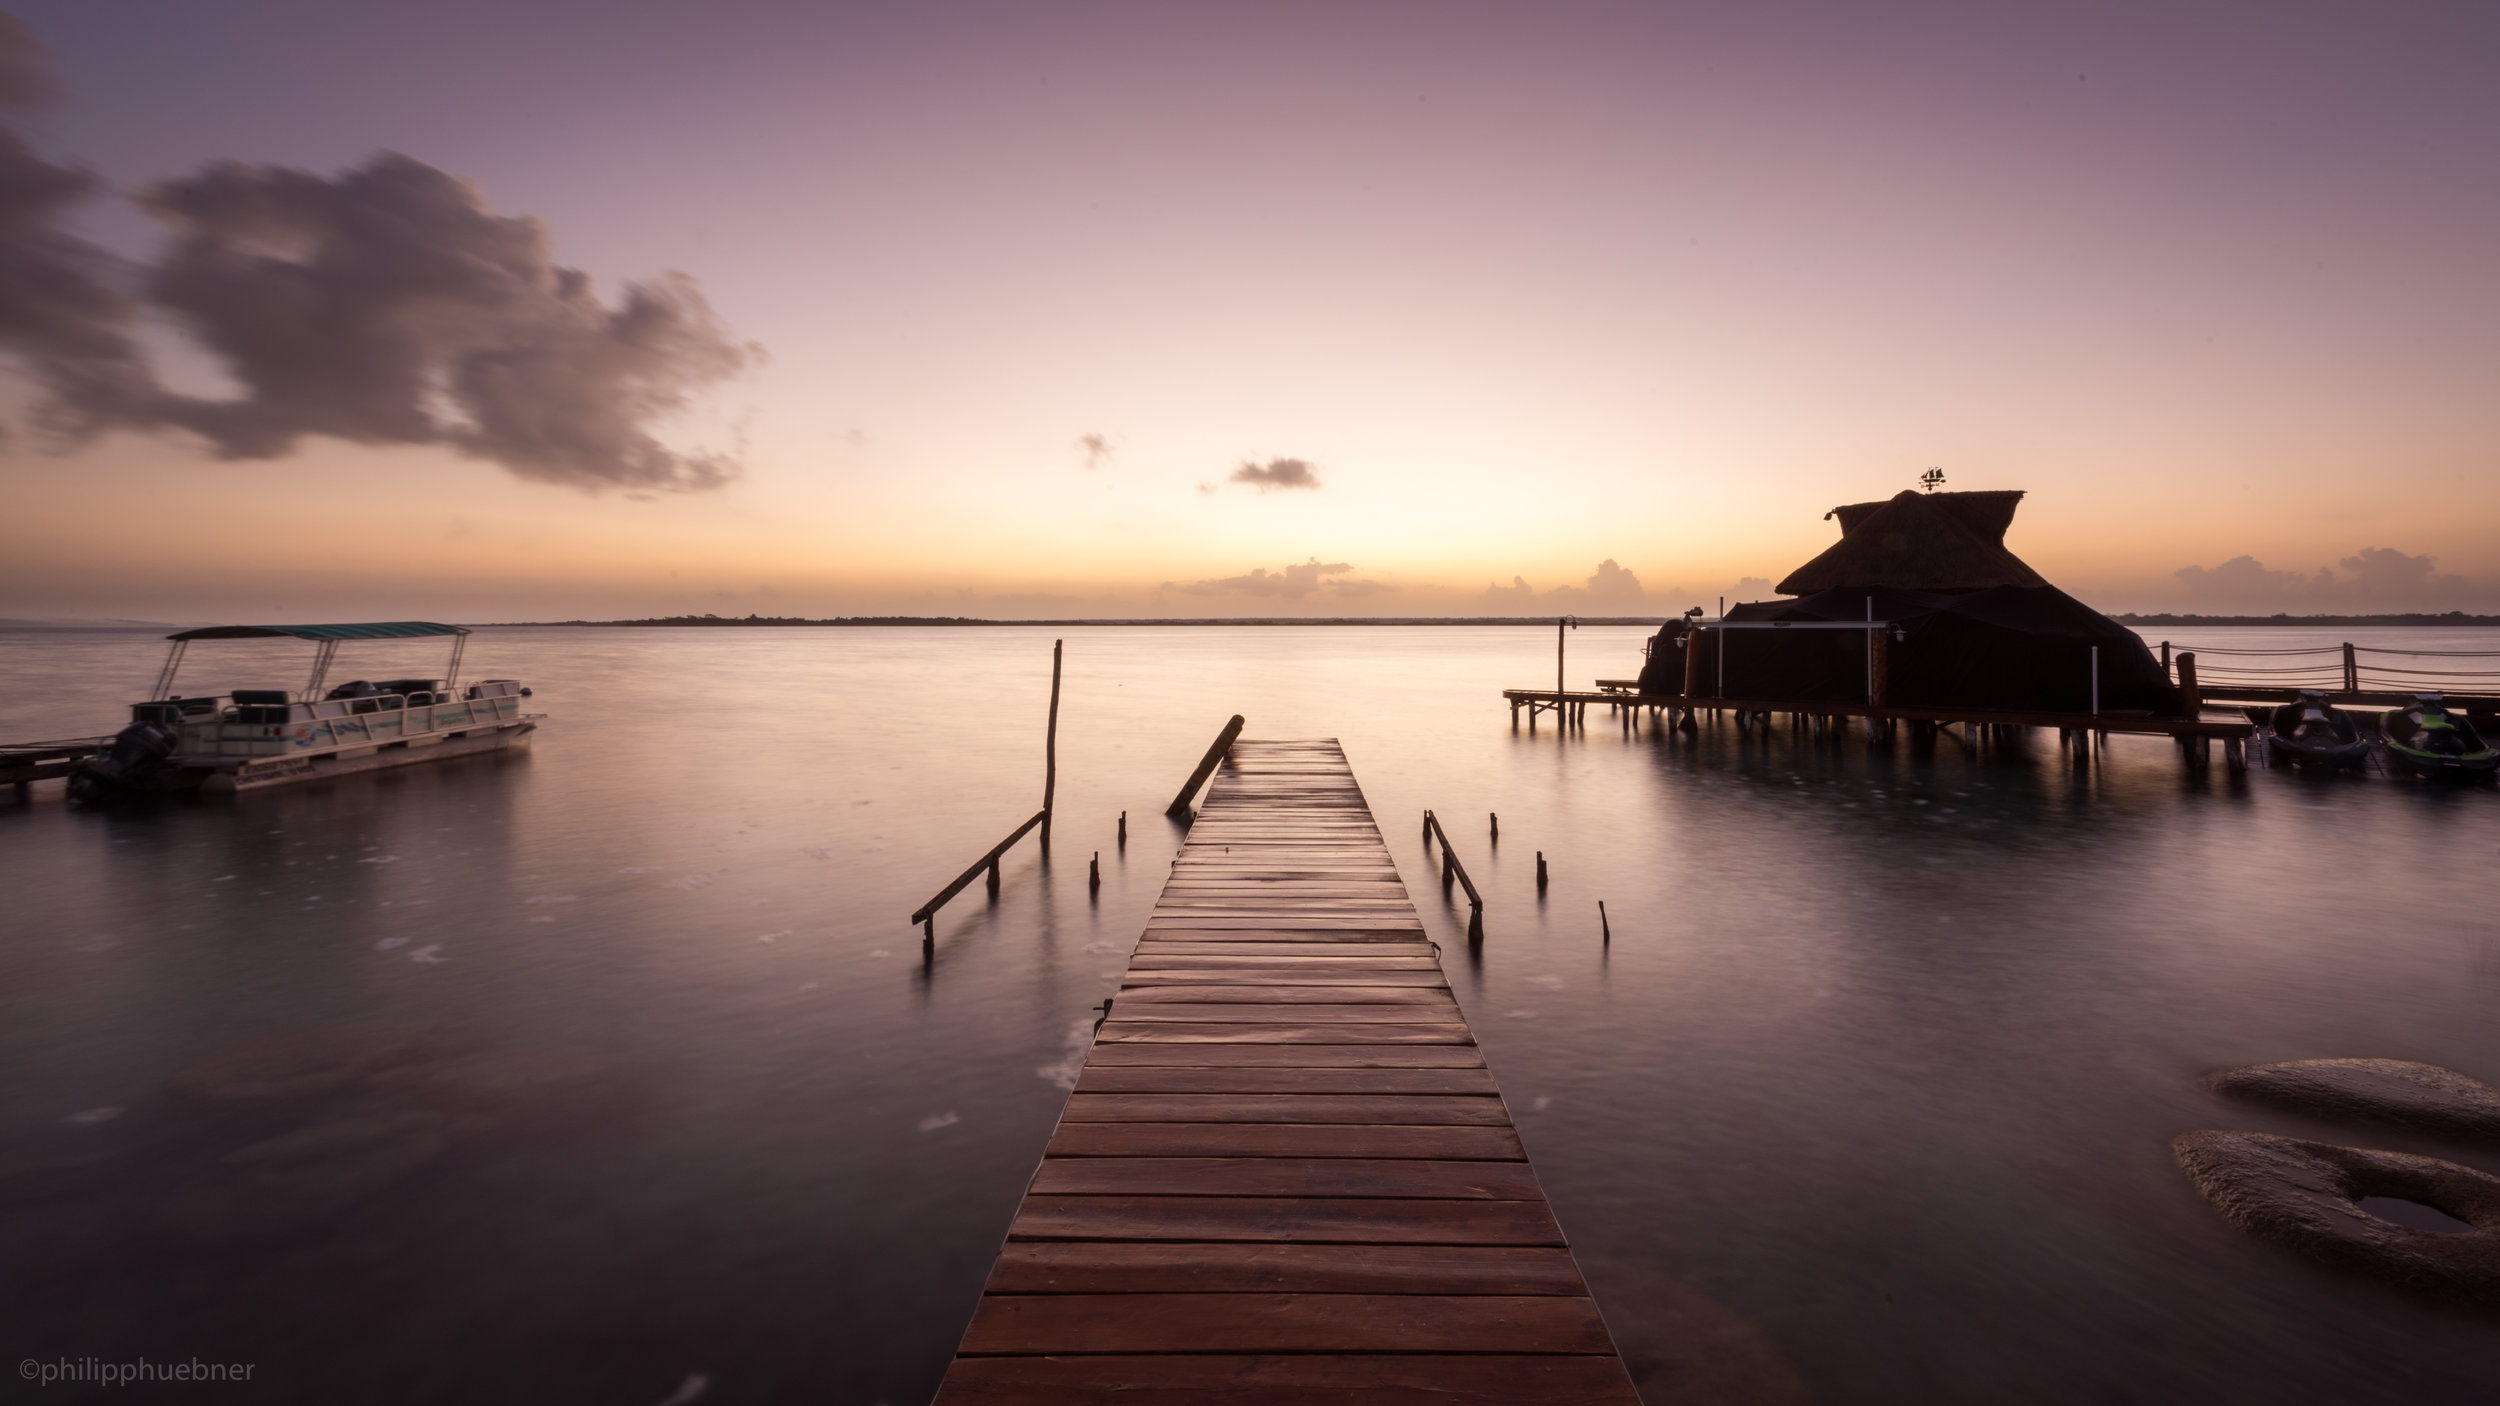 Mexico 2017   A one month trip through the states of Quintana Roo, Yucatan and Chiapas.